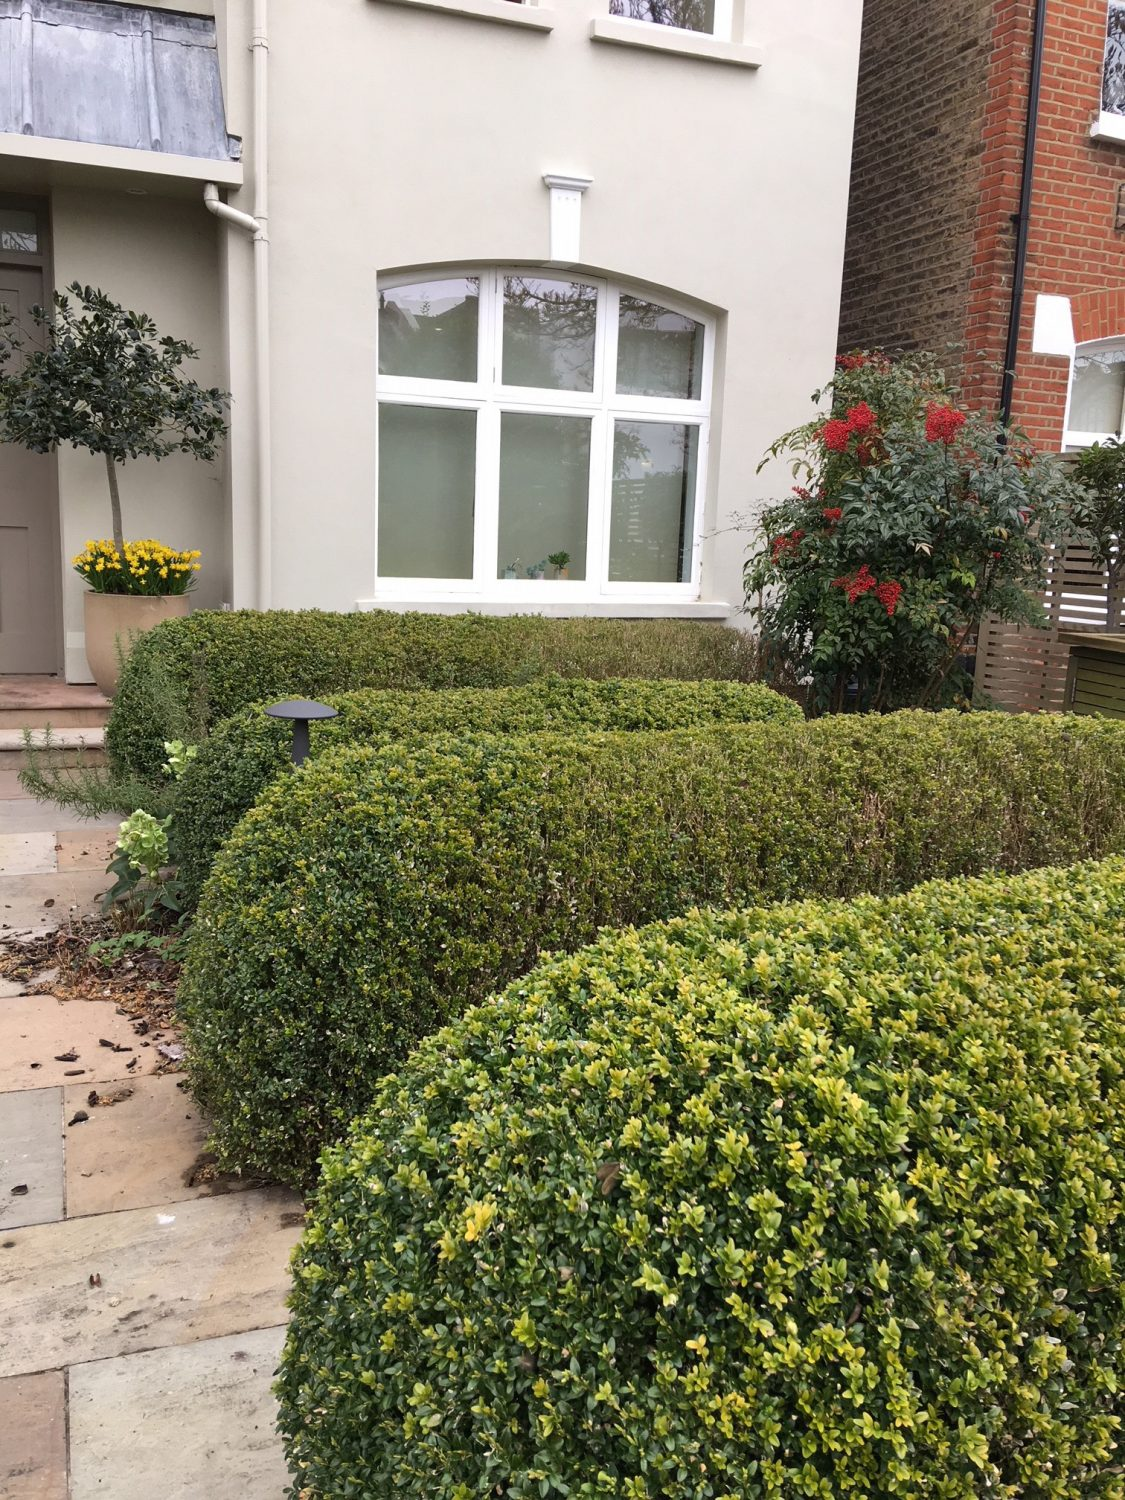 Lovingly tended box hedges in a Putney front garden